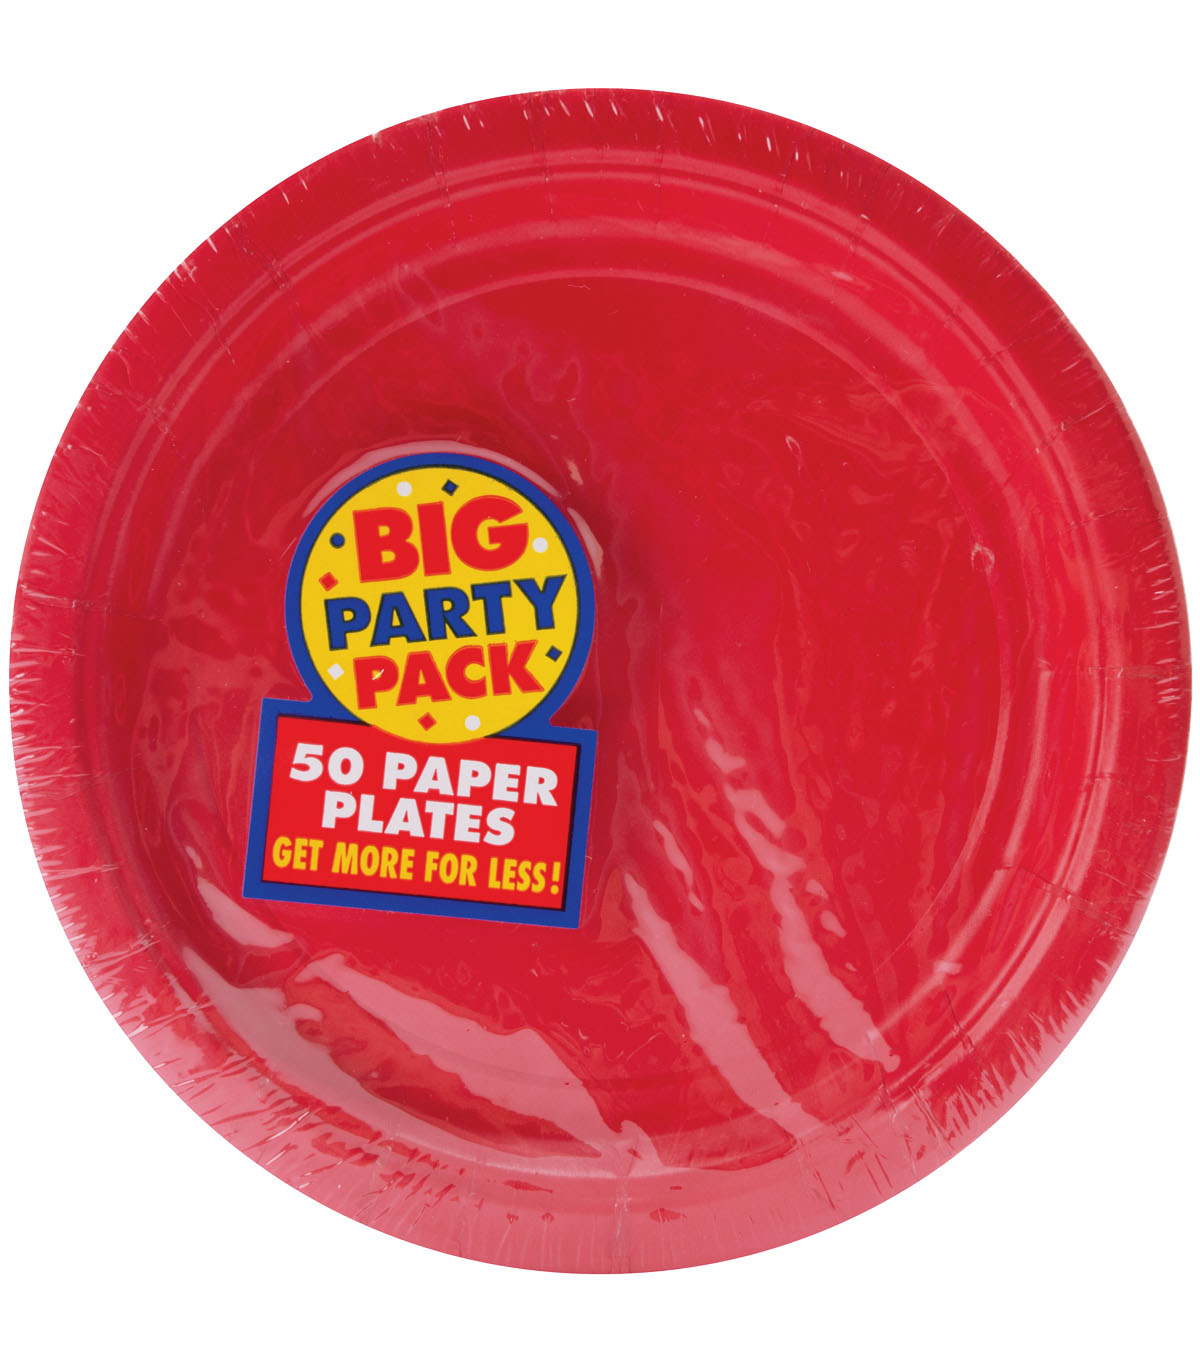 Amscan Big Party Pack 7\u0027\u0027 Lunch Paper Plates-60PK  sc 1 st  Joann & Amscan Big Party Pack 7\u0027\u0027 Lunch Paper Plates - 60PK | JOANN